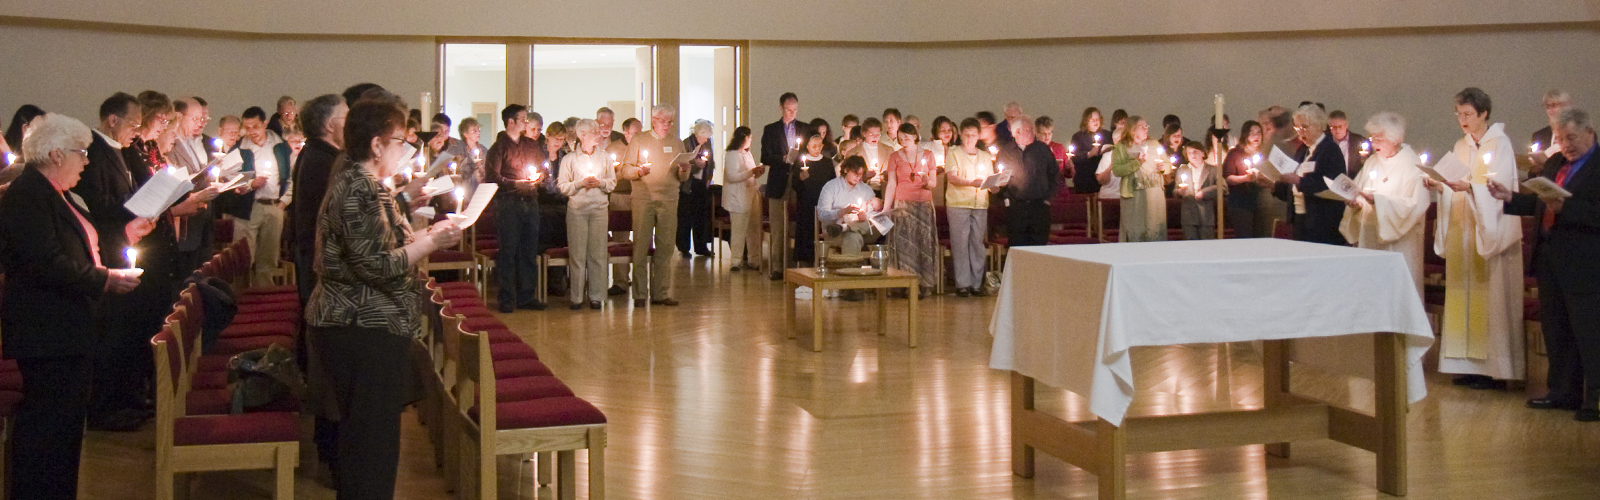 Easter vigil candlelight service at Holy Wisdom Monastery.